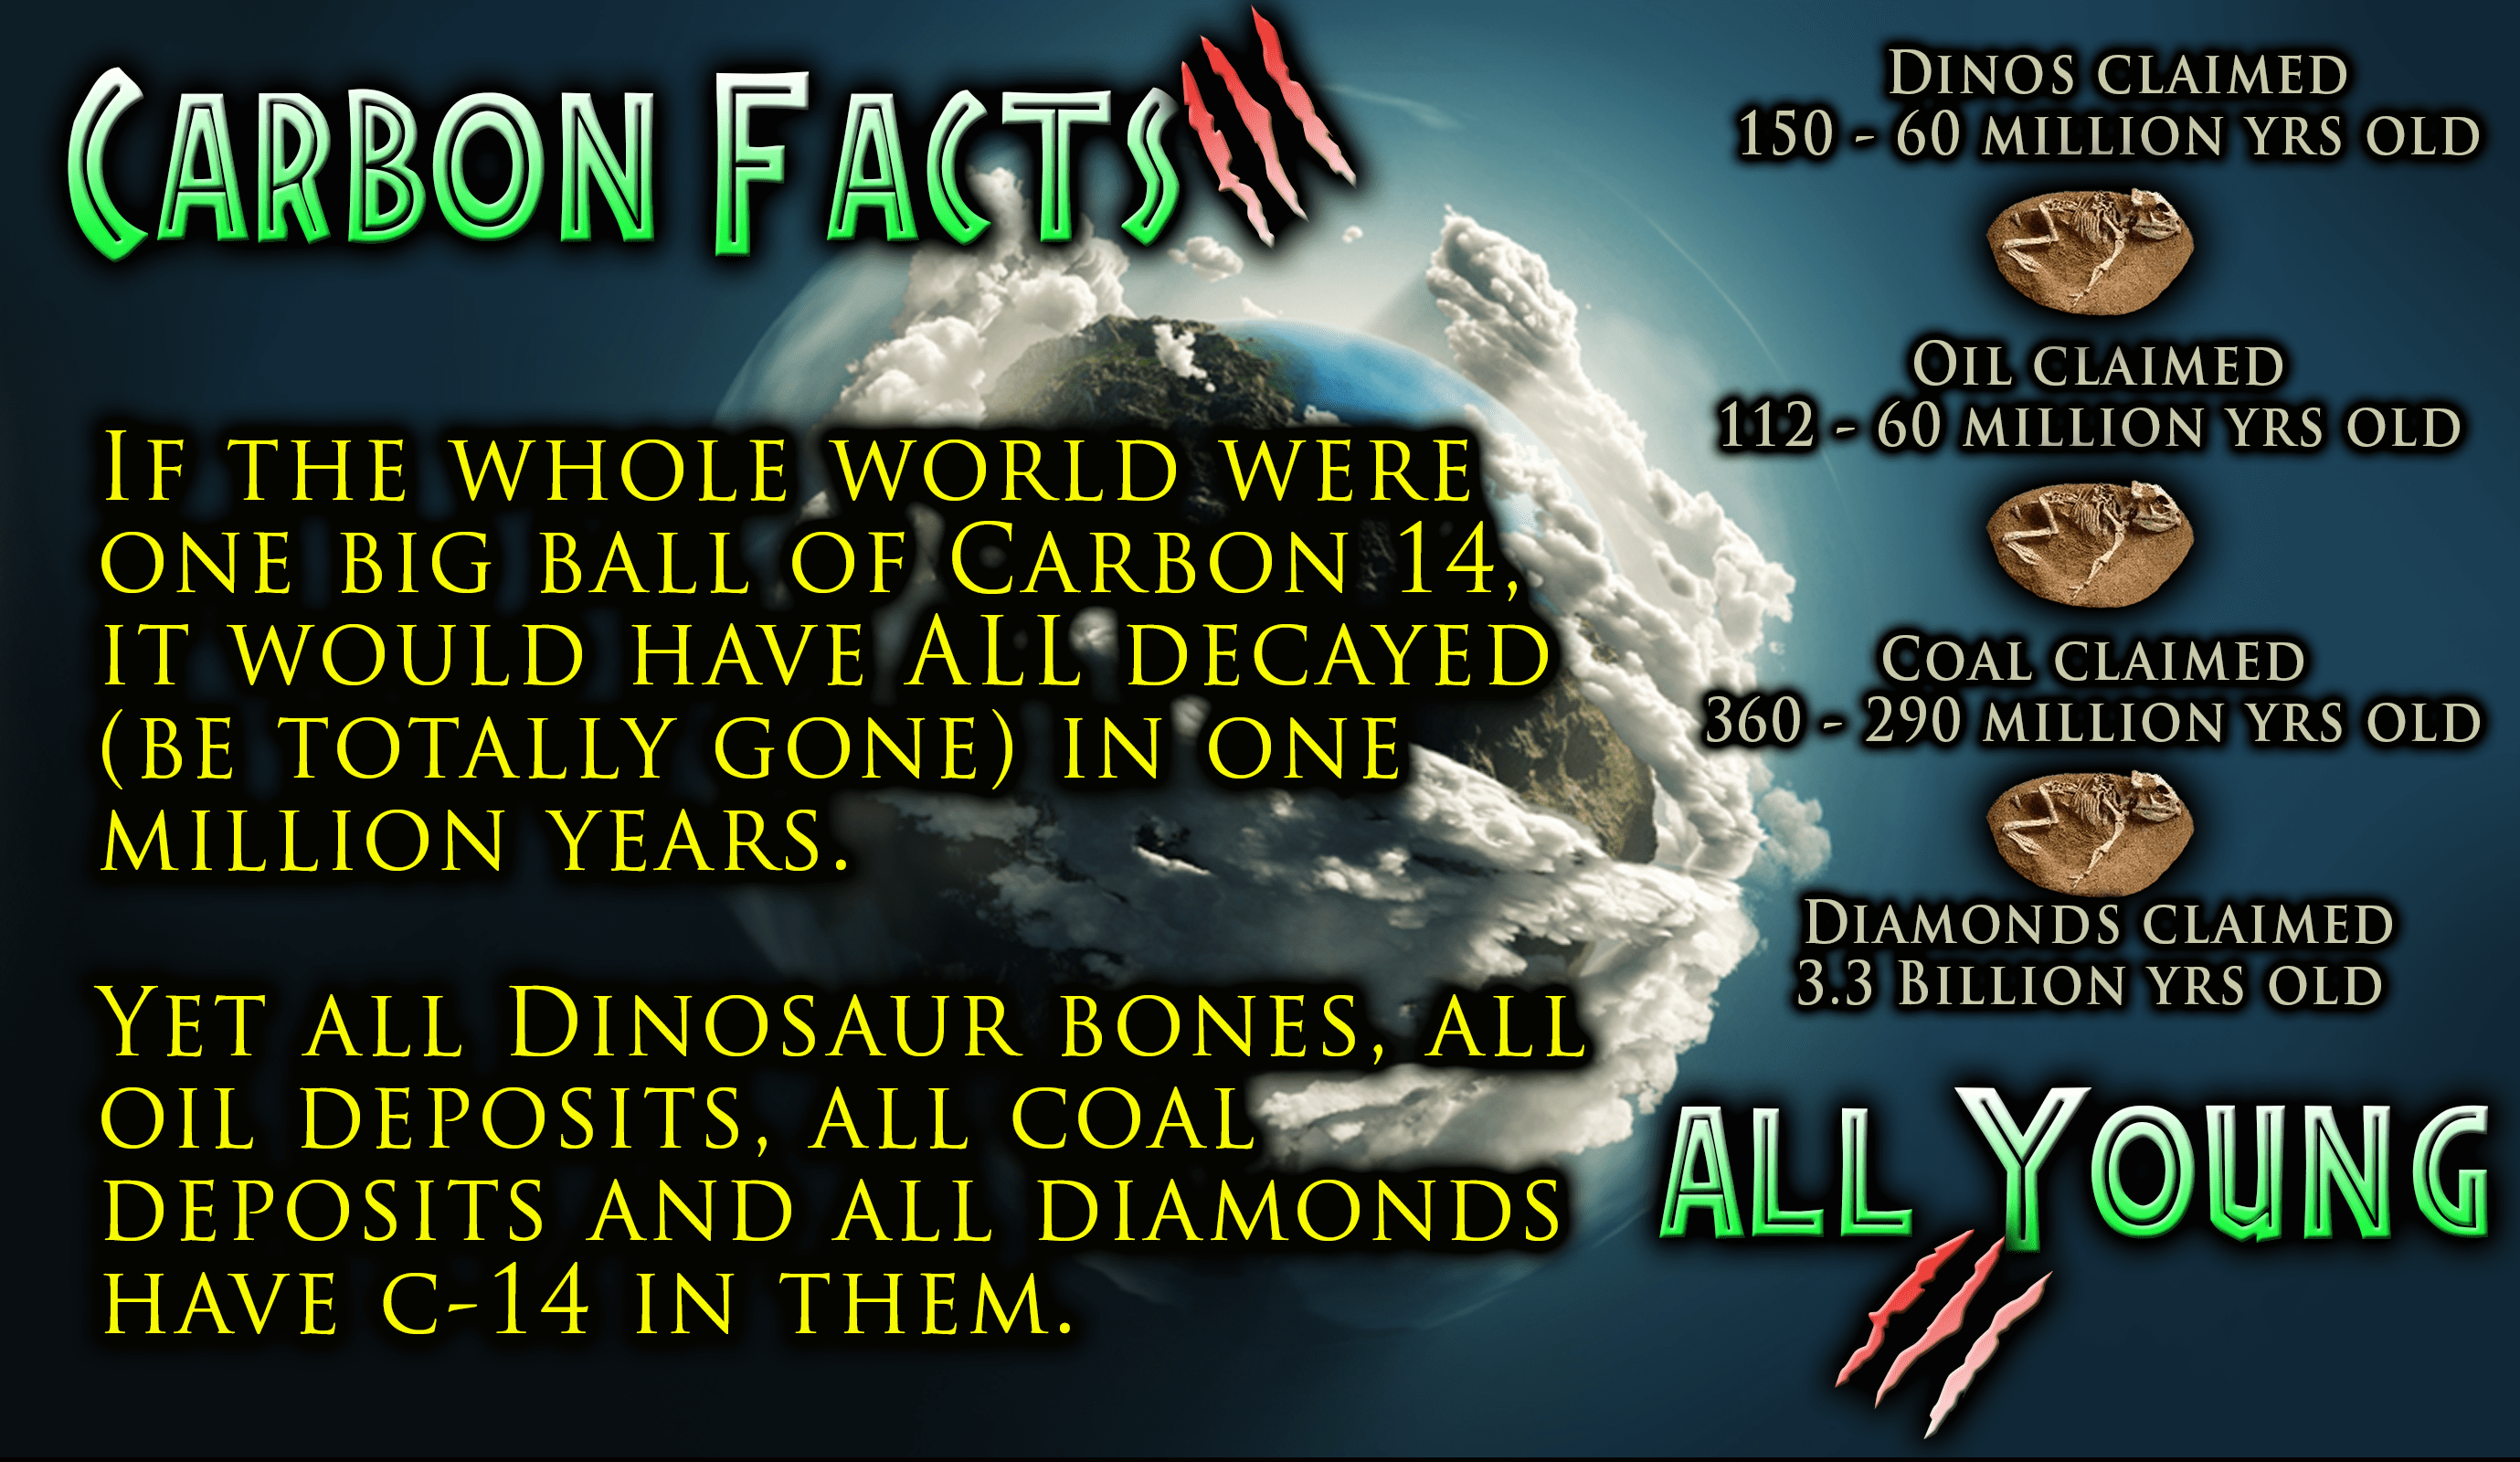 Dinosaurs-Carbon-Dating-C14-Dinosaurs-Age-of-Earth-Coal-Diamonds